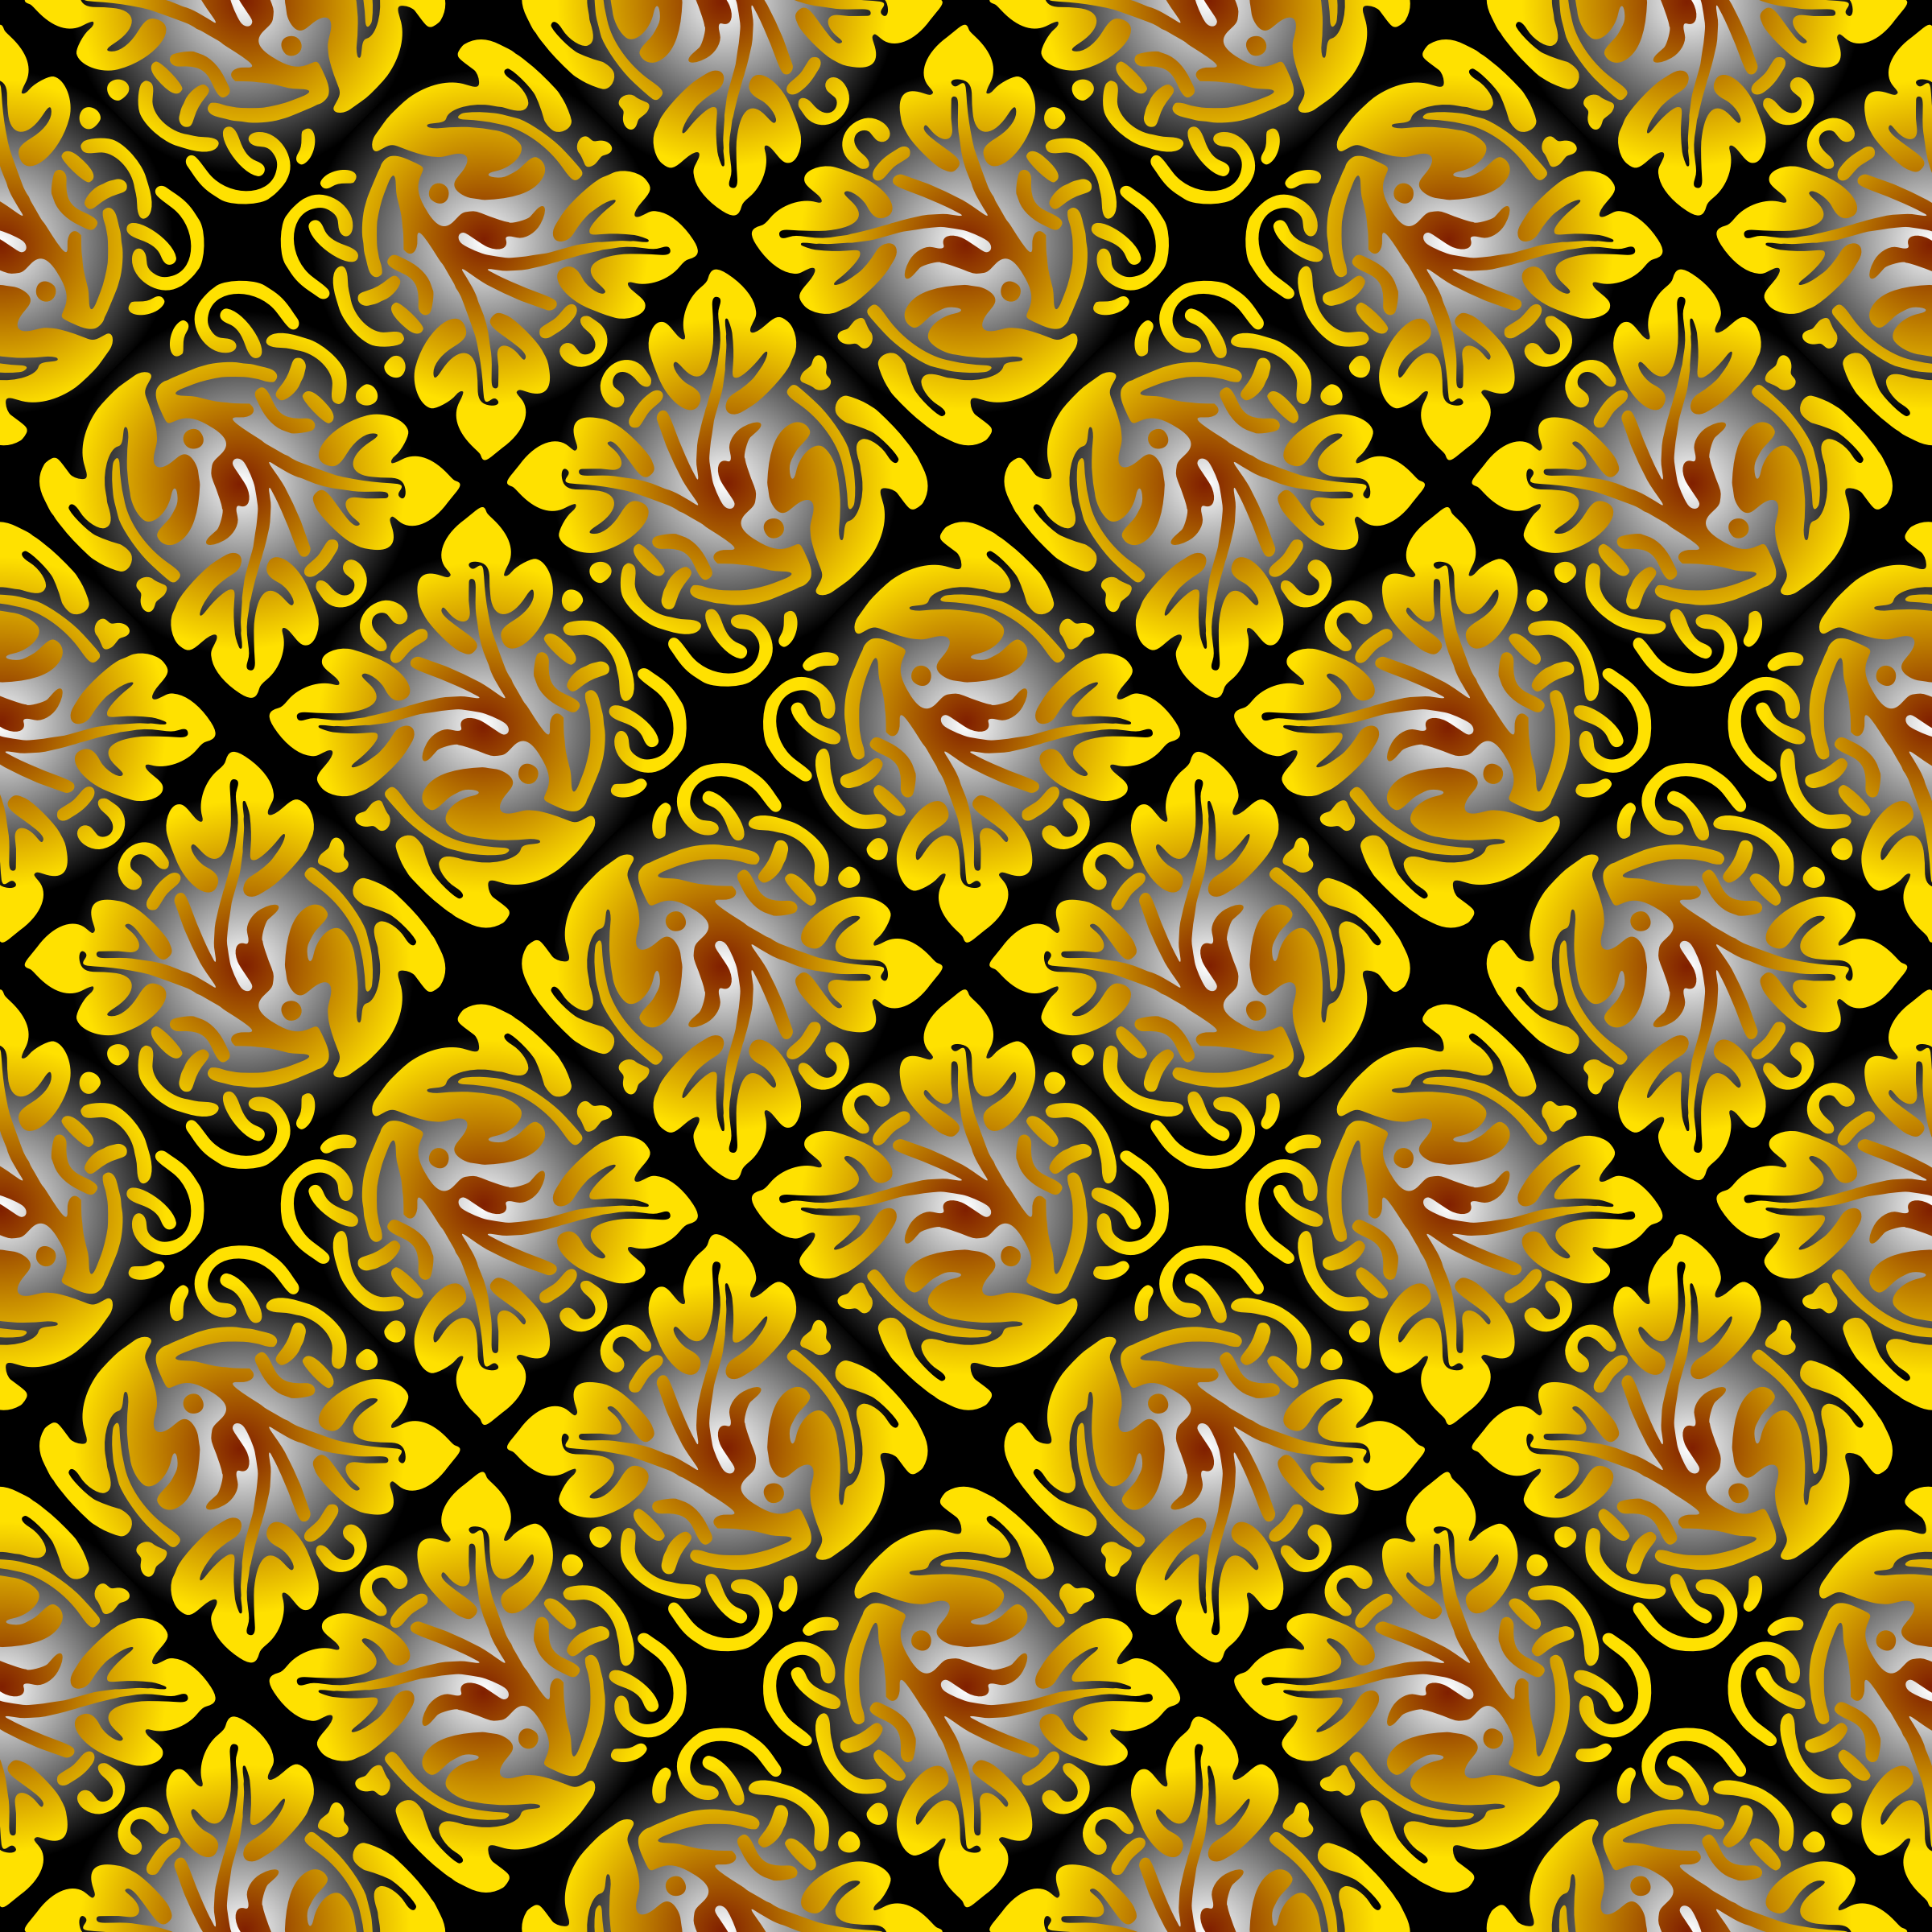 Background pattern 172 (colour 2) by Firkin